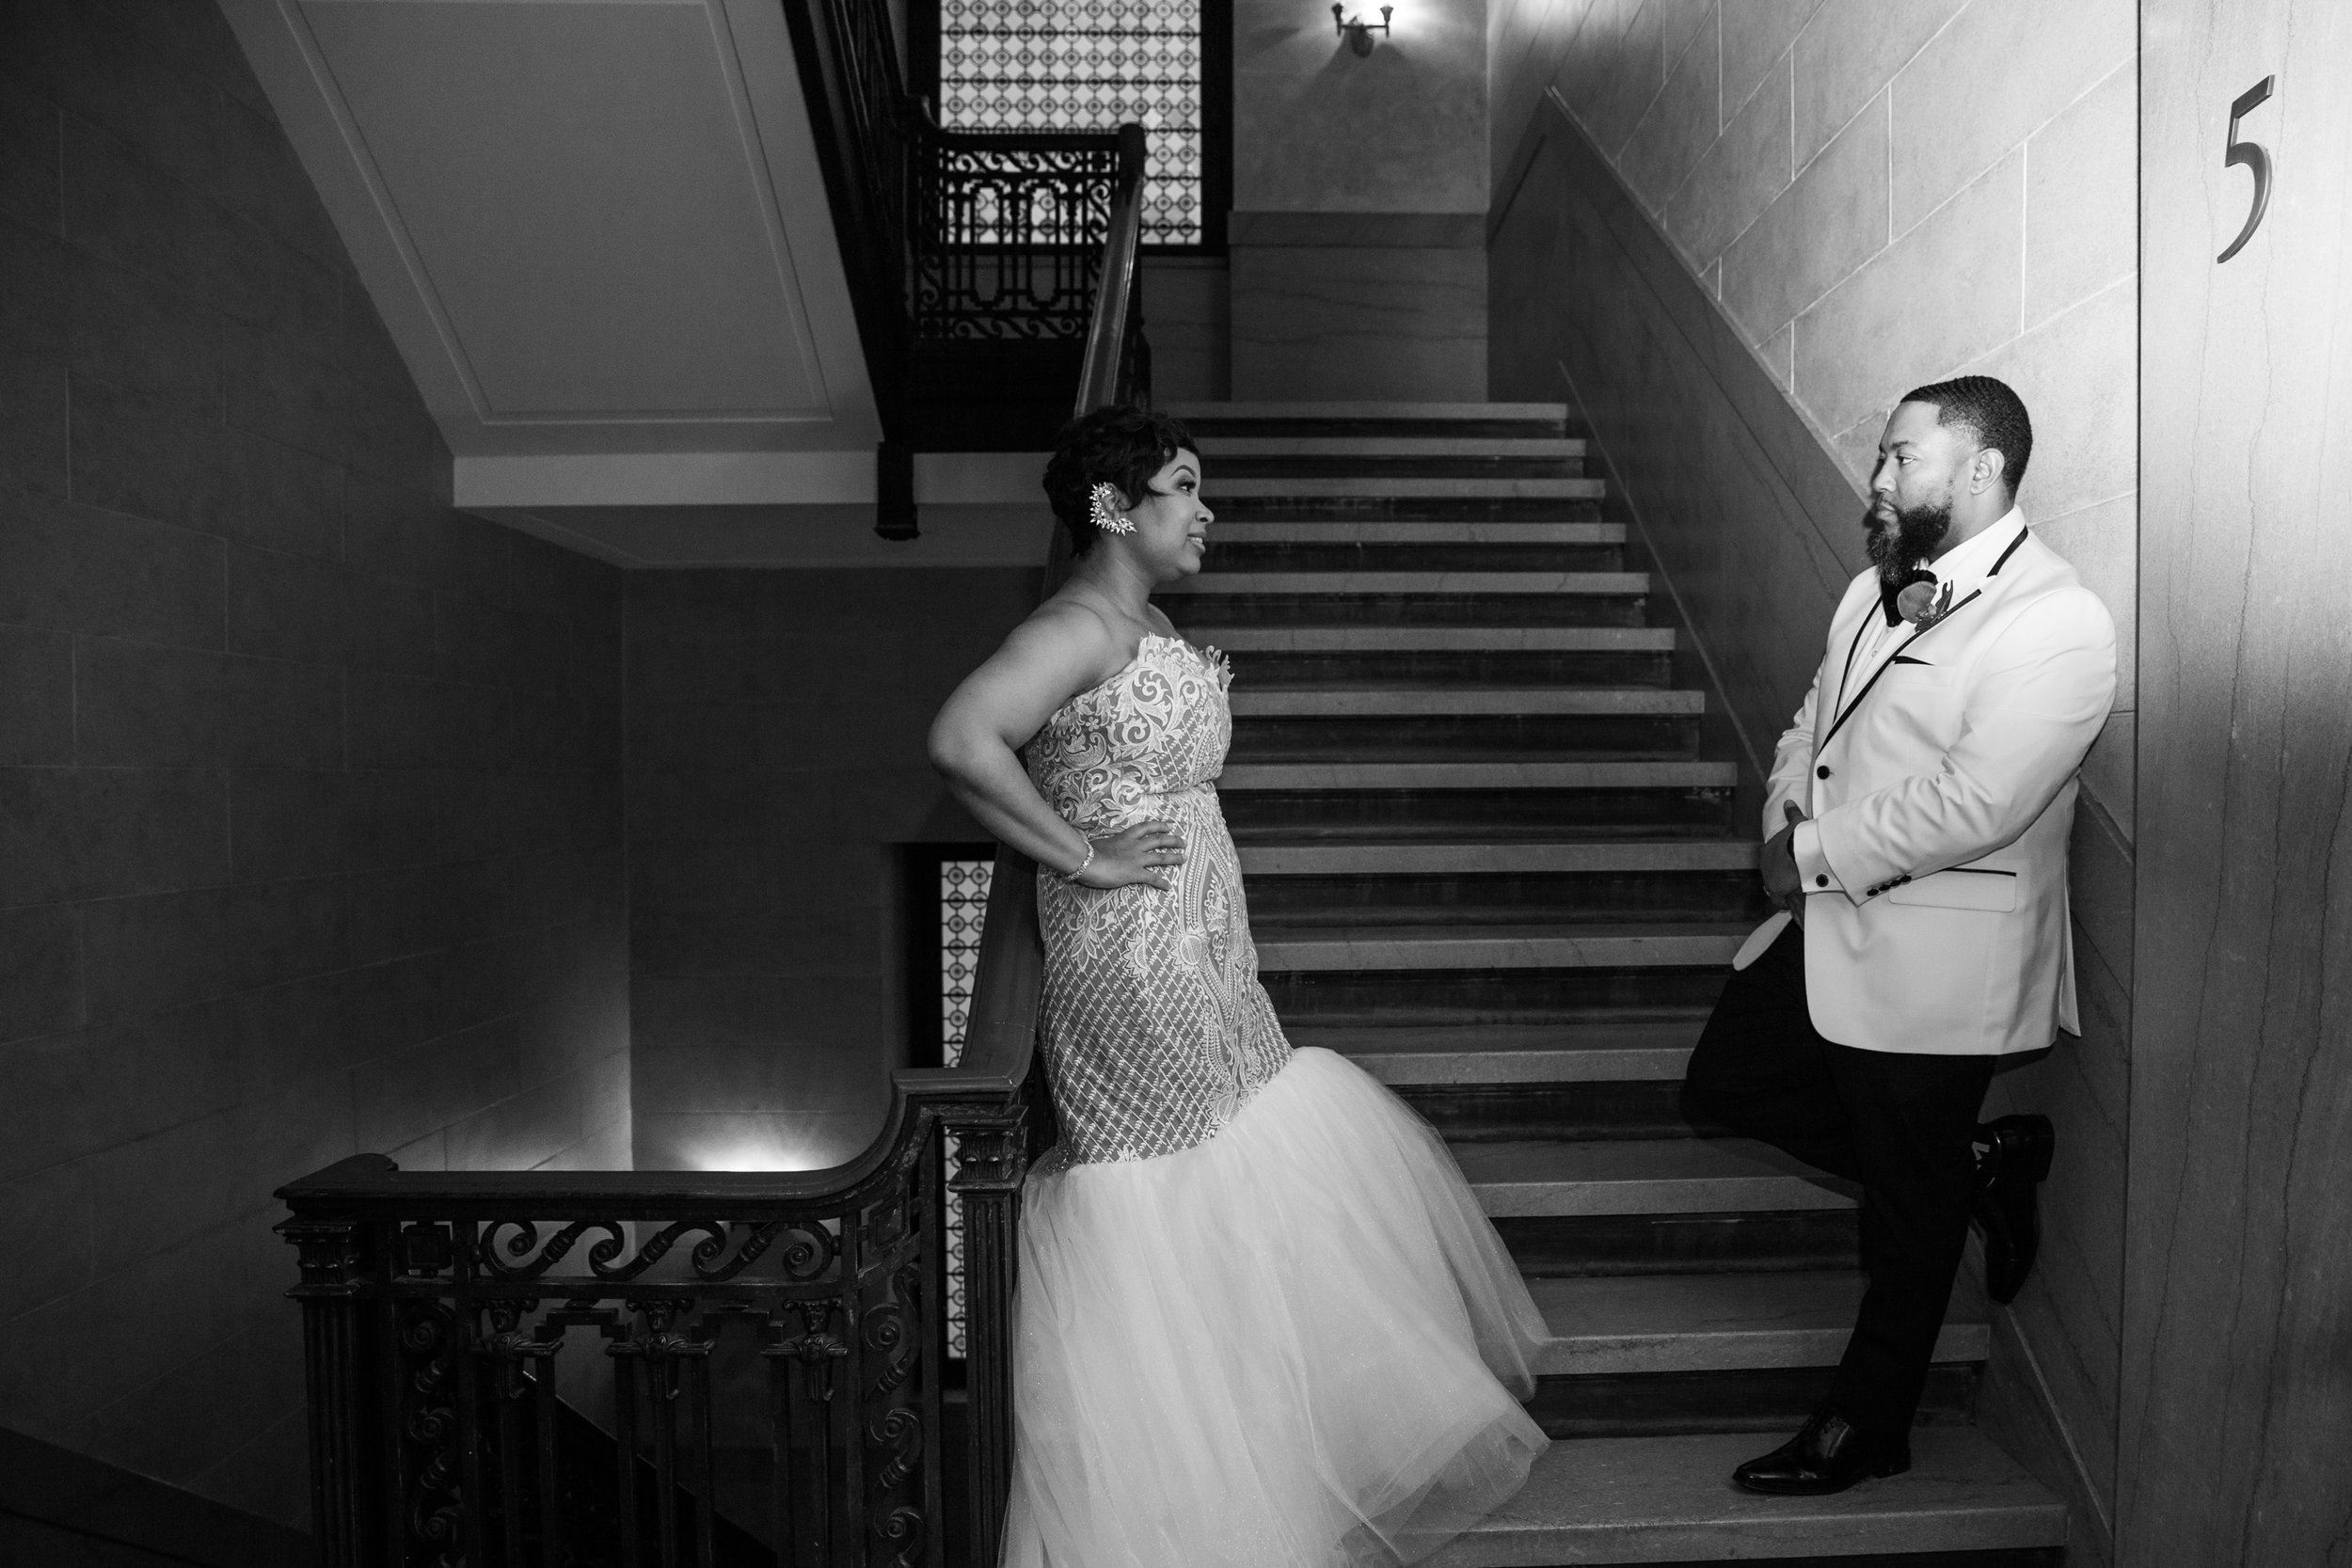 Best Classic Black Bride at The Grand Baltimore Maryland Husband and Wife Wedding Photographers Megapixels Media (96 of 98).jpg